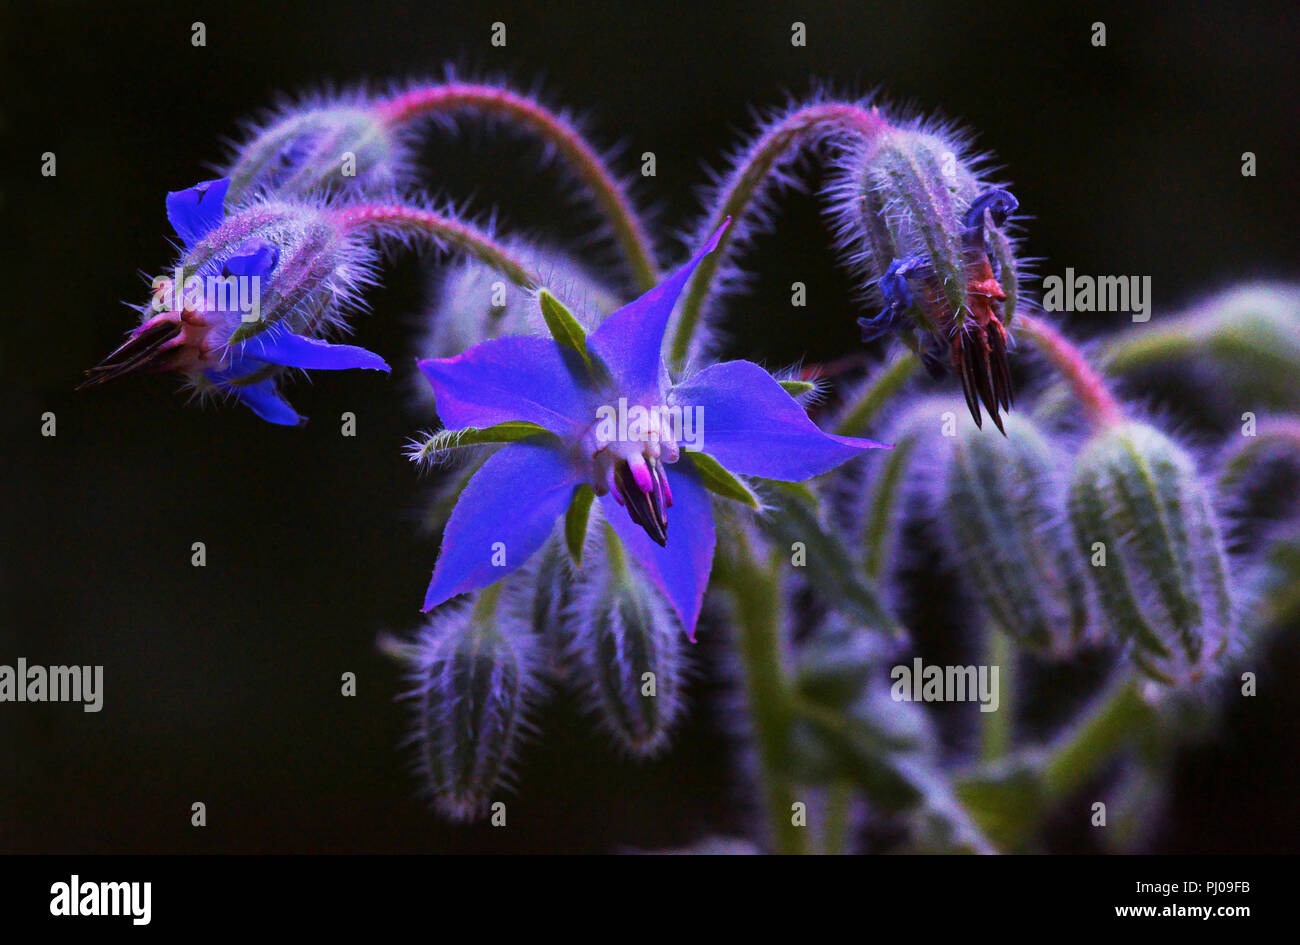 Close-up of the flowers of Borage (Borago officinalis).Borage has been used as a medicinal plant since ancient times. - Stock Image